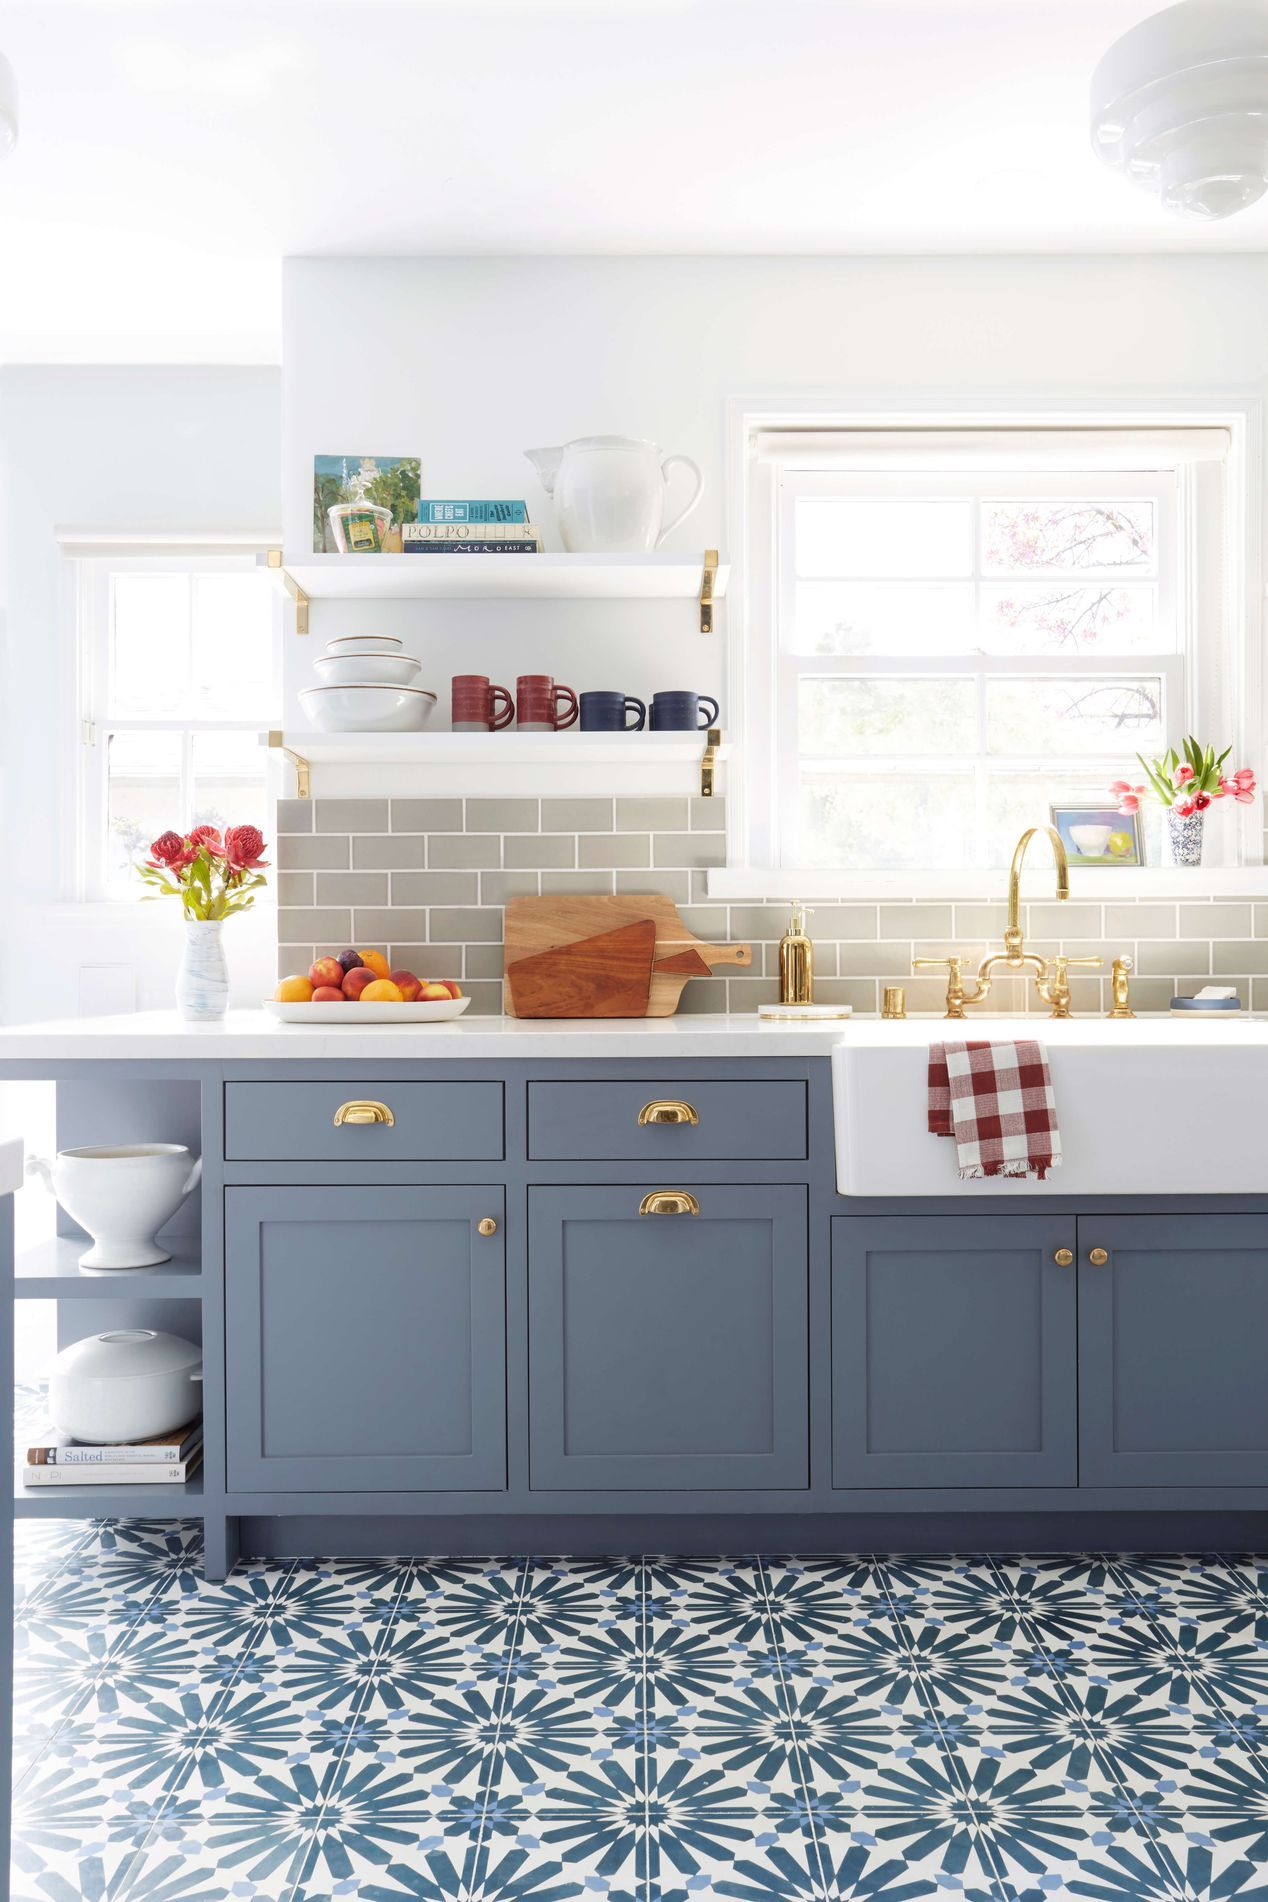 54 Clever Small Kitchen Ideas That Maximize Space In A Snap Trendy Kitchen Home Kitchens Home Decor Kitchen